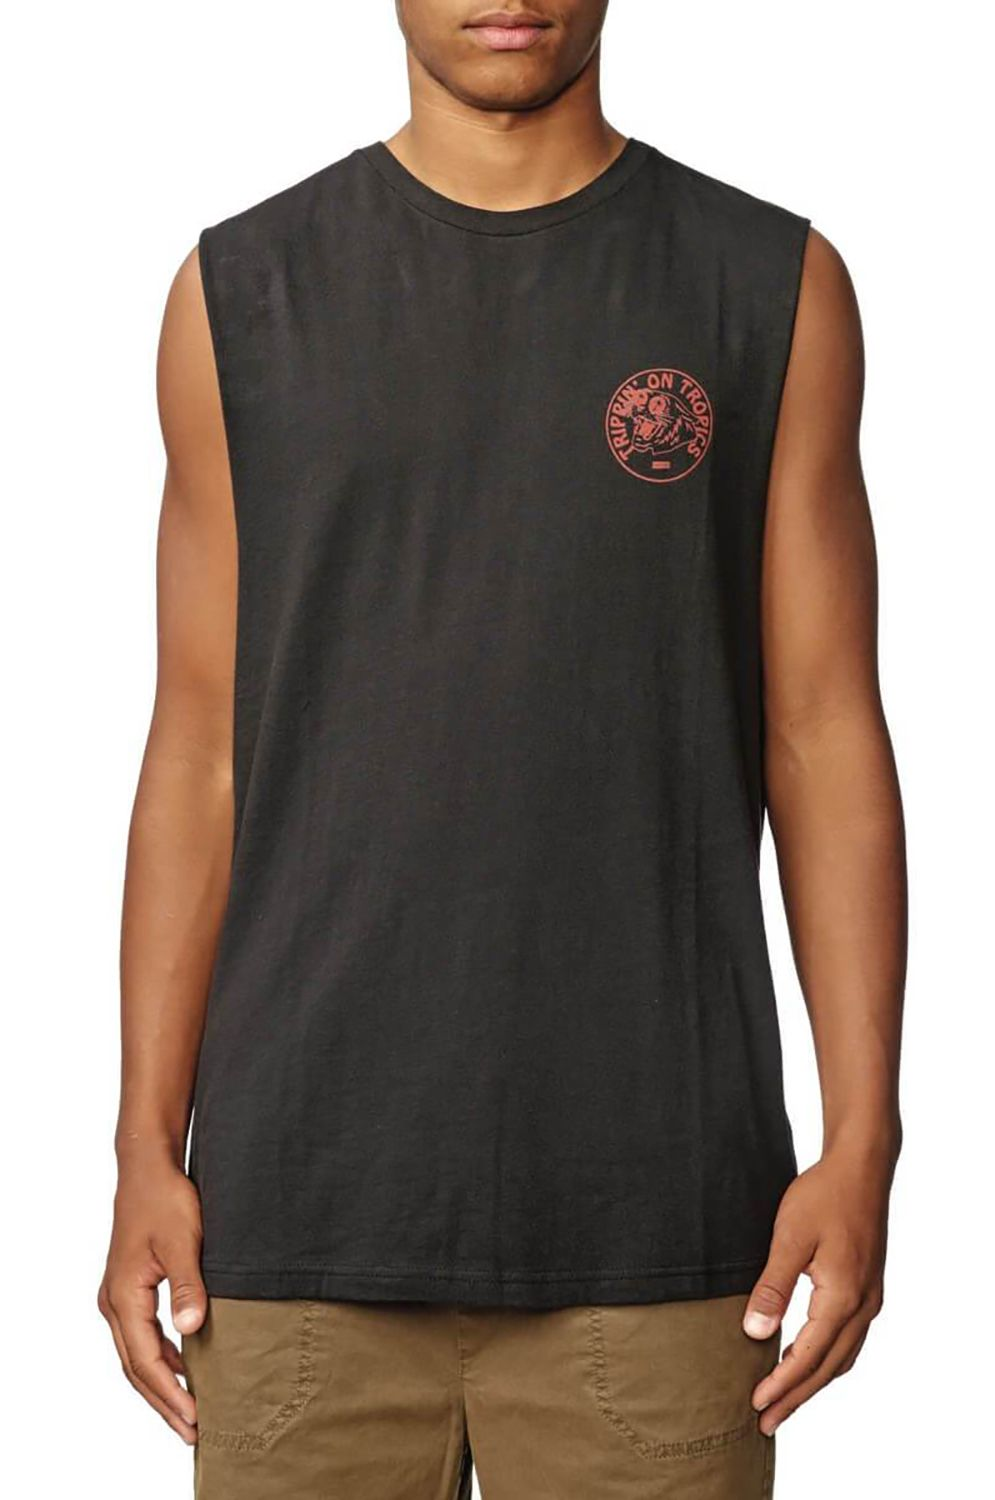 Globe T-Shirt Tank Top TRIPPIN' MUSCLE Washed Black